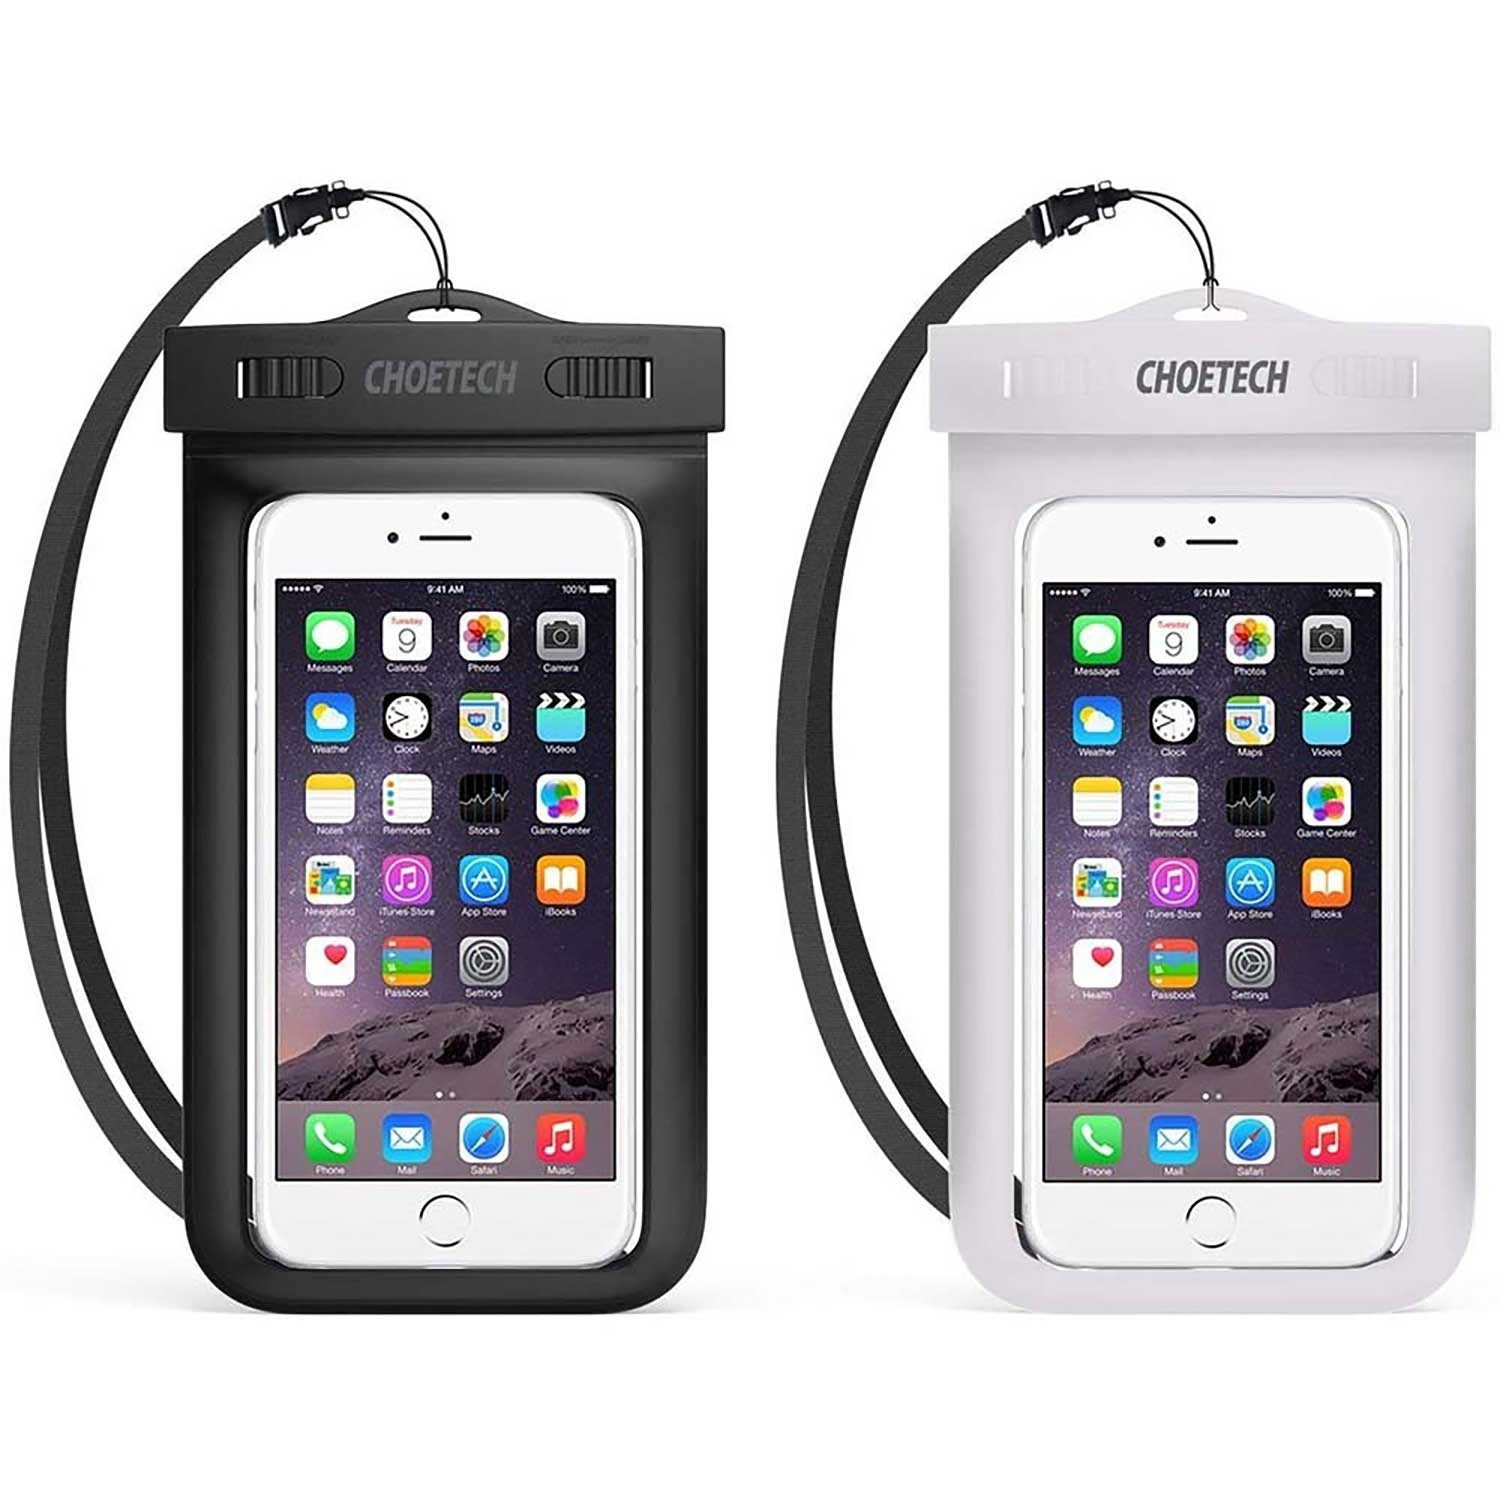 Case - CHOETECH 2 Pack Waterproof Case Universal White and Black